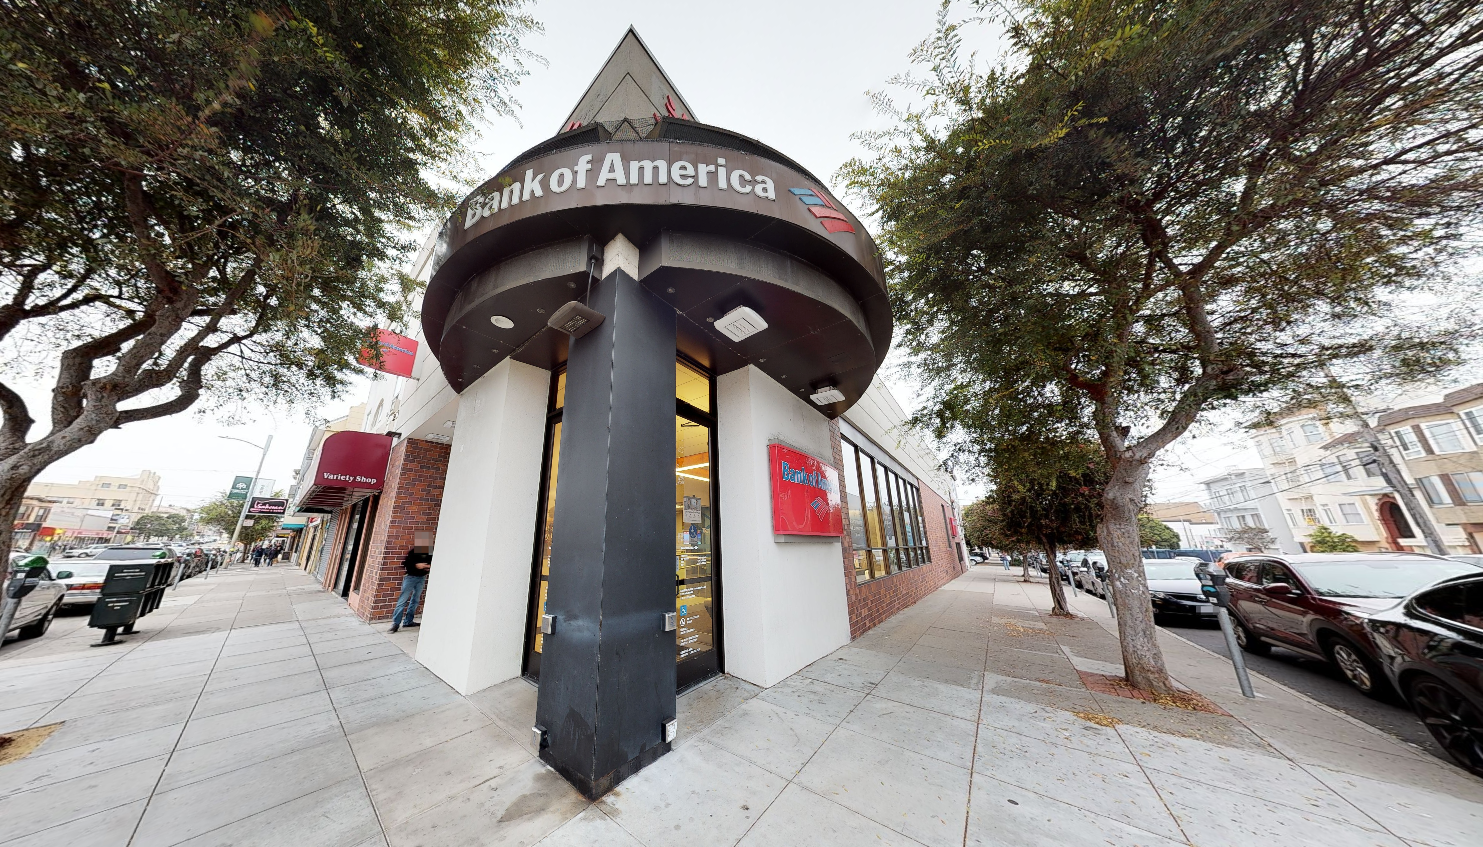 Bank of America financial center with walk-up ATM   600 Clement St, San Francisco, CA 94118